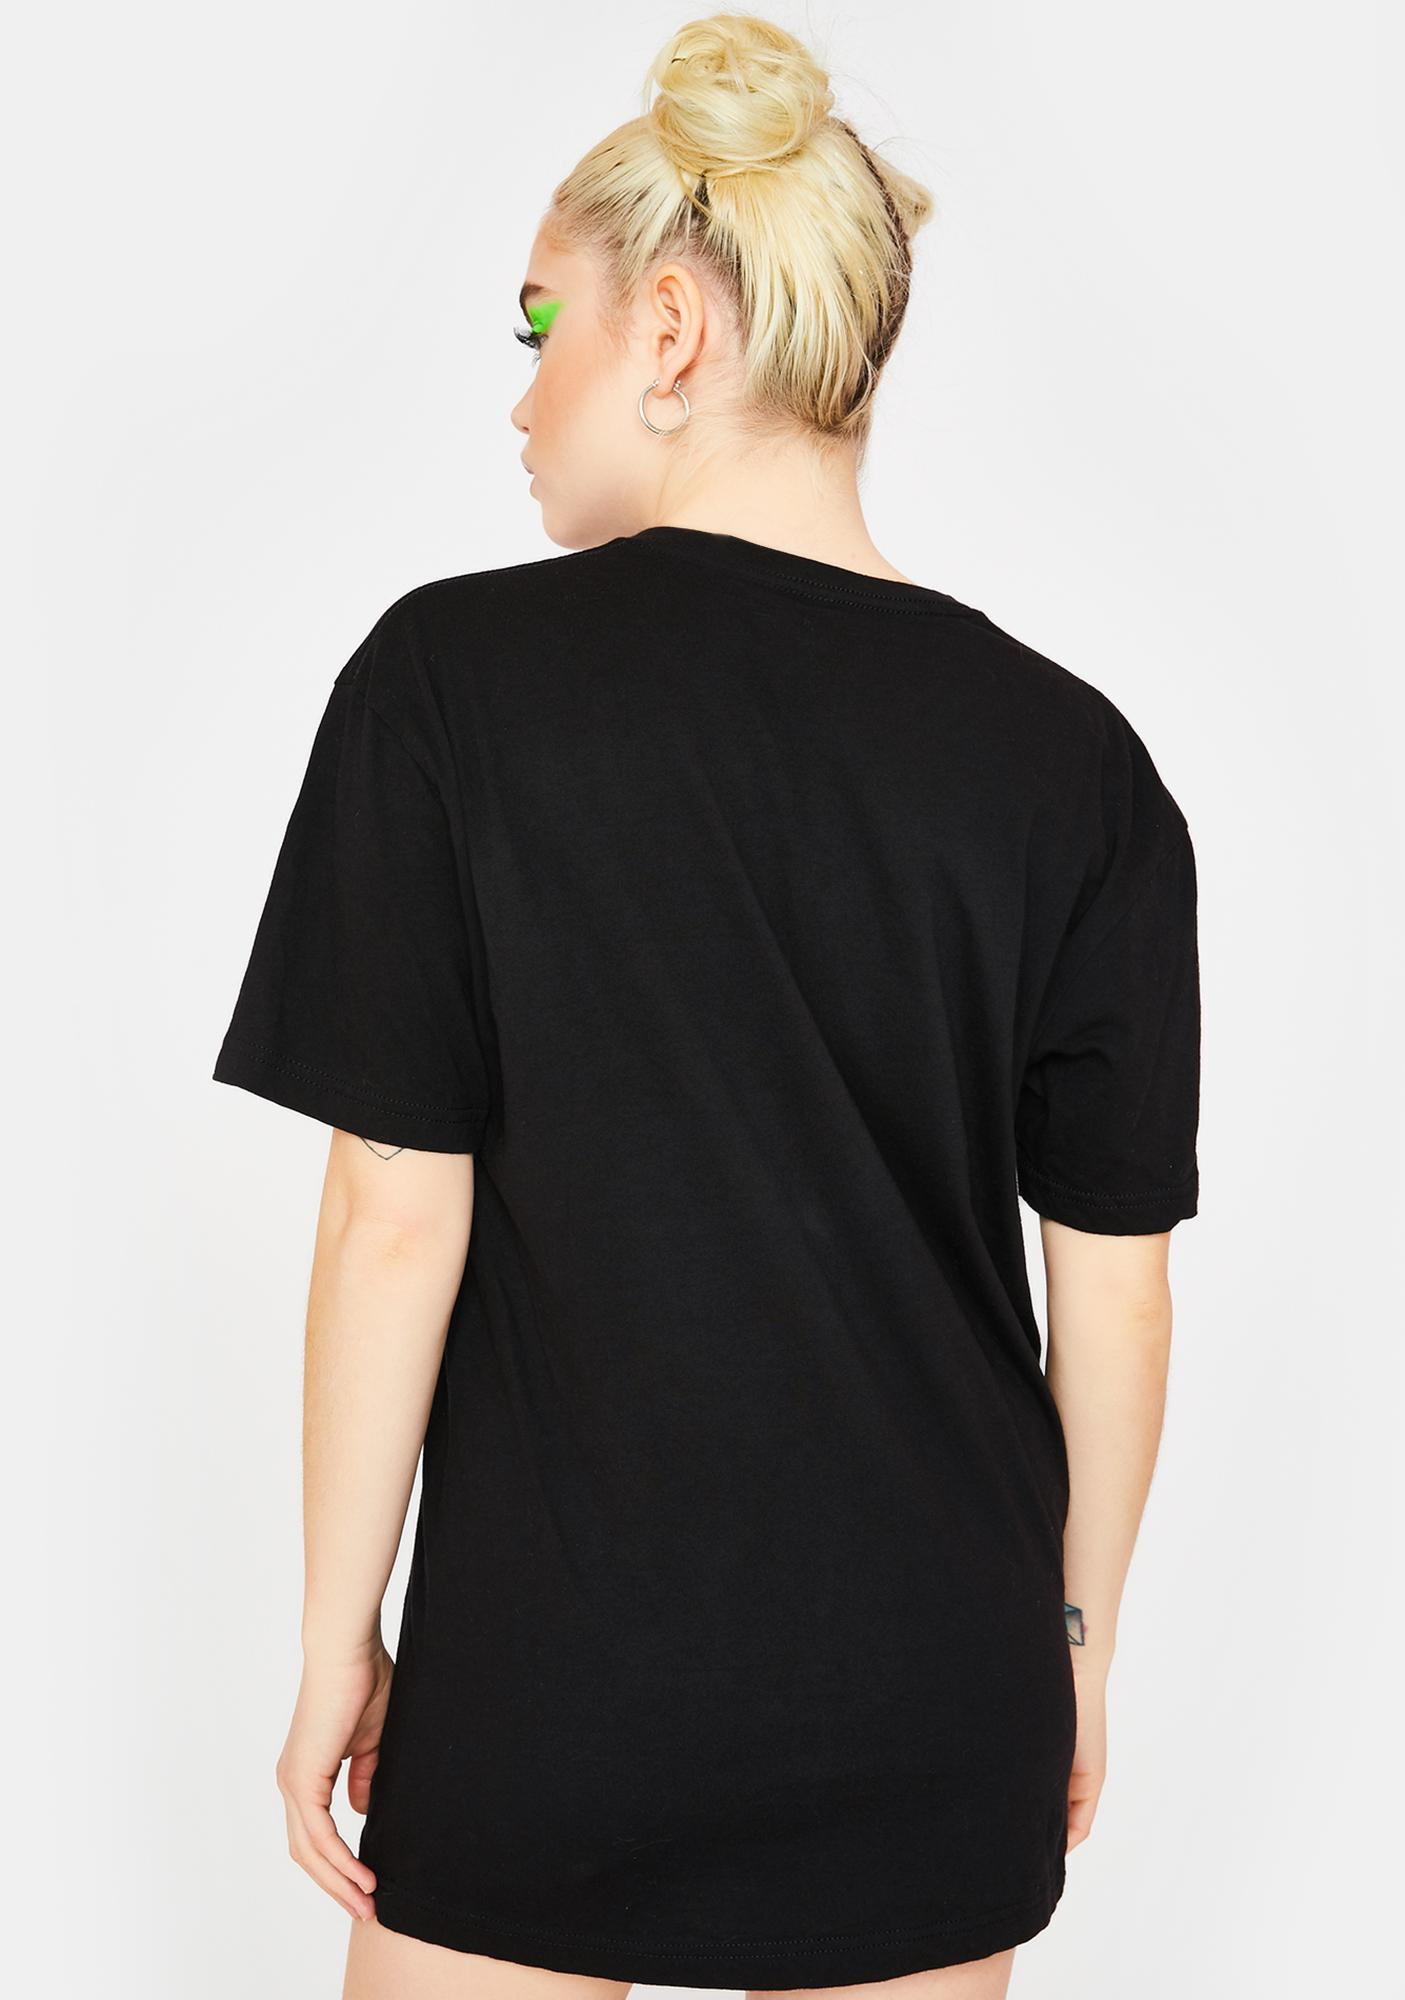 Femfetti Let's Makeout Graphic Tee